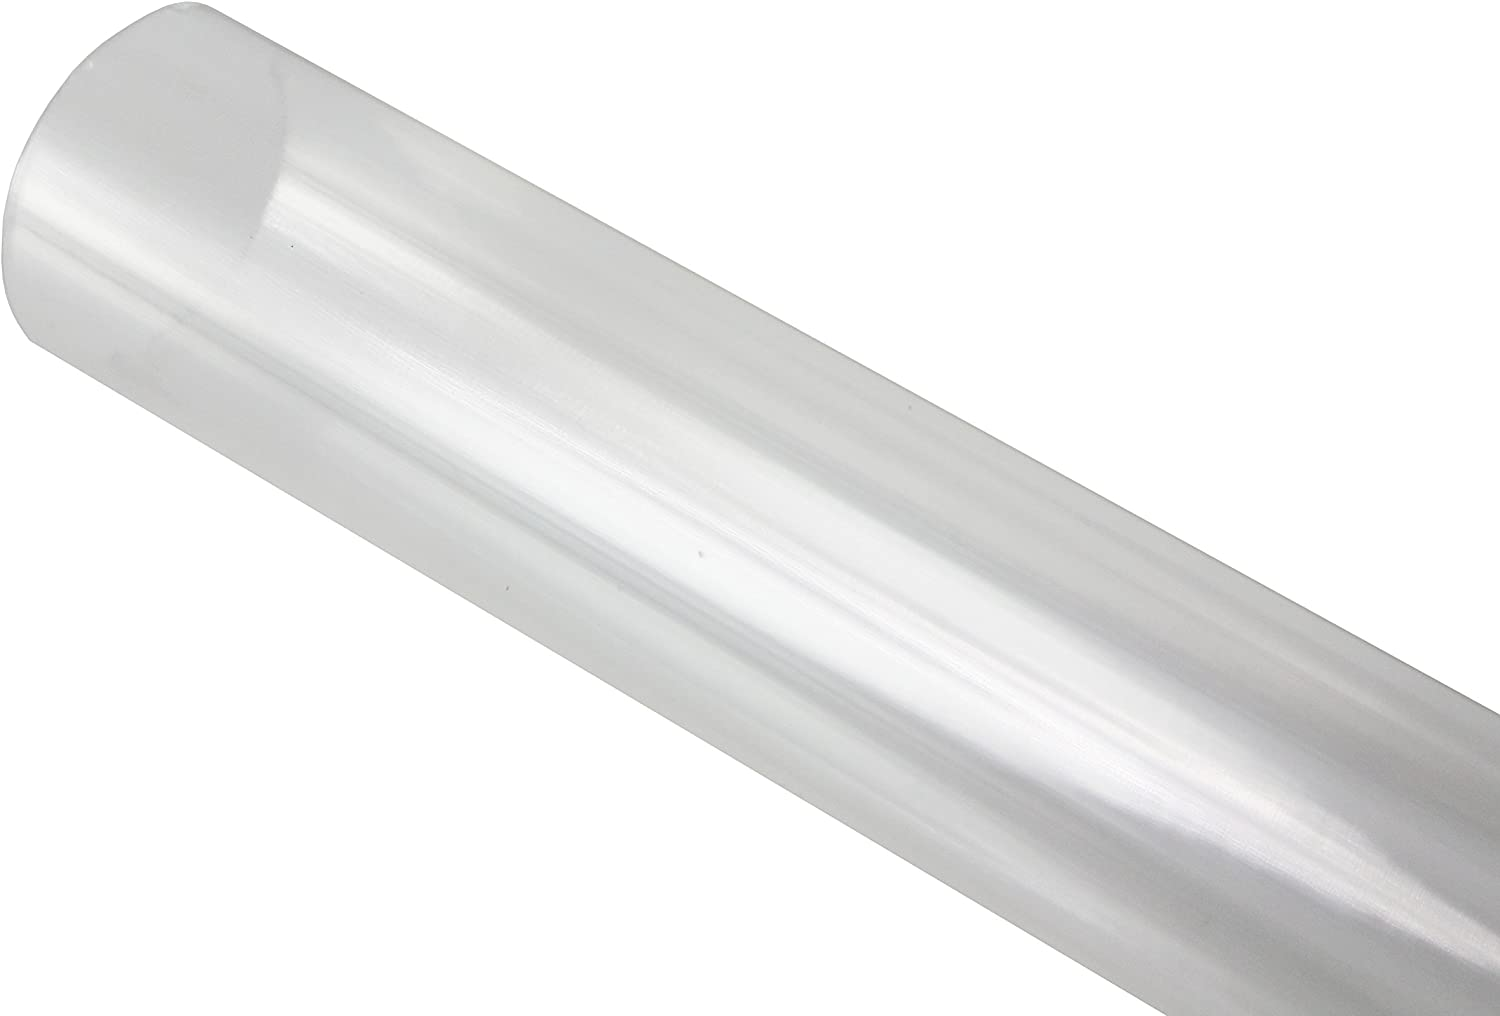 T12 8/' Clear Tube guard Fluorescent Plastic Light Cover  Bulb Protectors 12